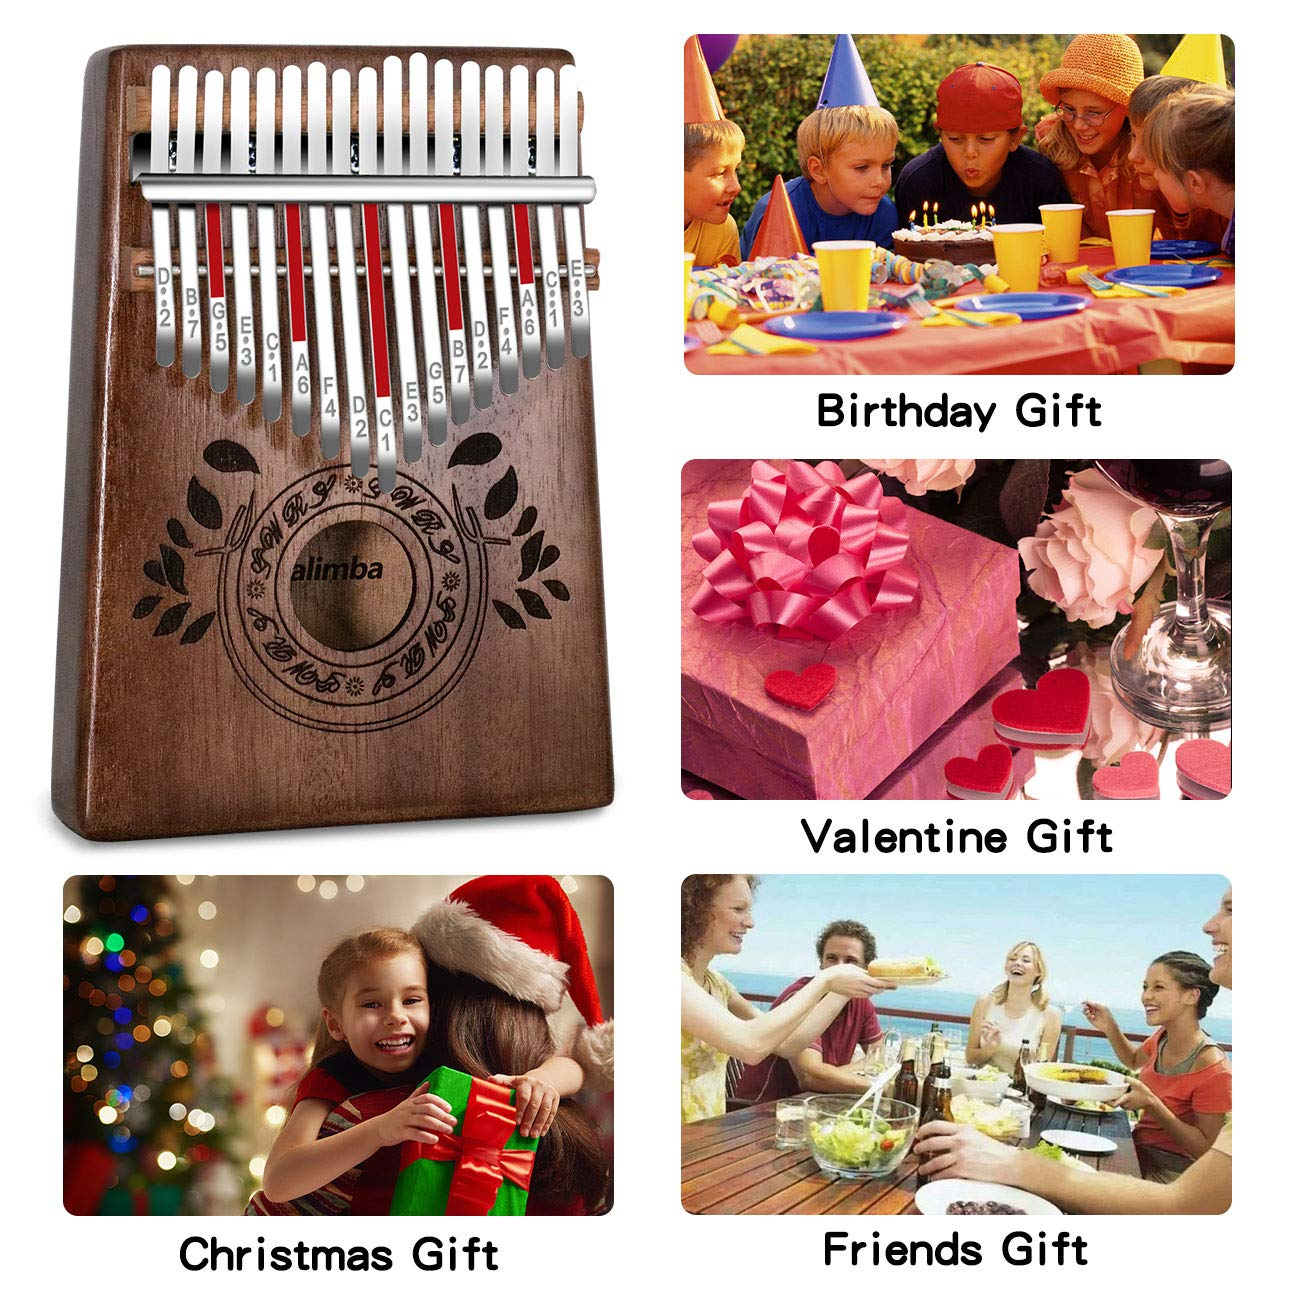 UNOKKI Kalimba 17 Keys Thumb Piano with Study Instruction and Tune Hammer, Portable Solid African Wood Finger Piano, Gift for Kids Adult Beginners (Chocolate Brown). by UNOKKI (Image #6)